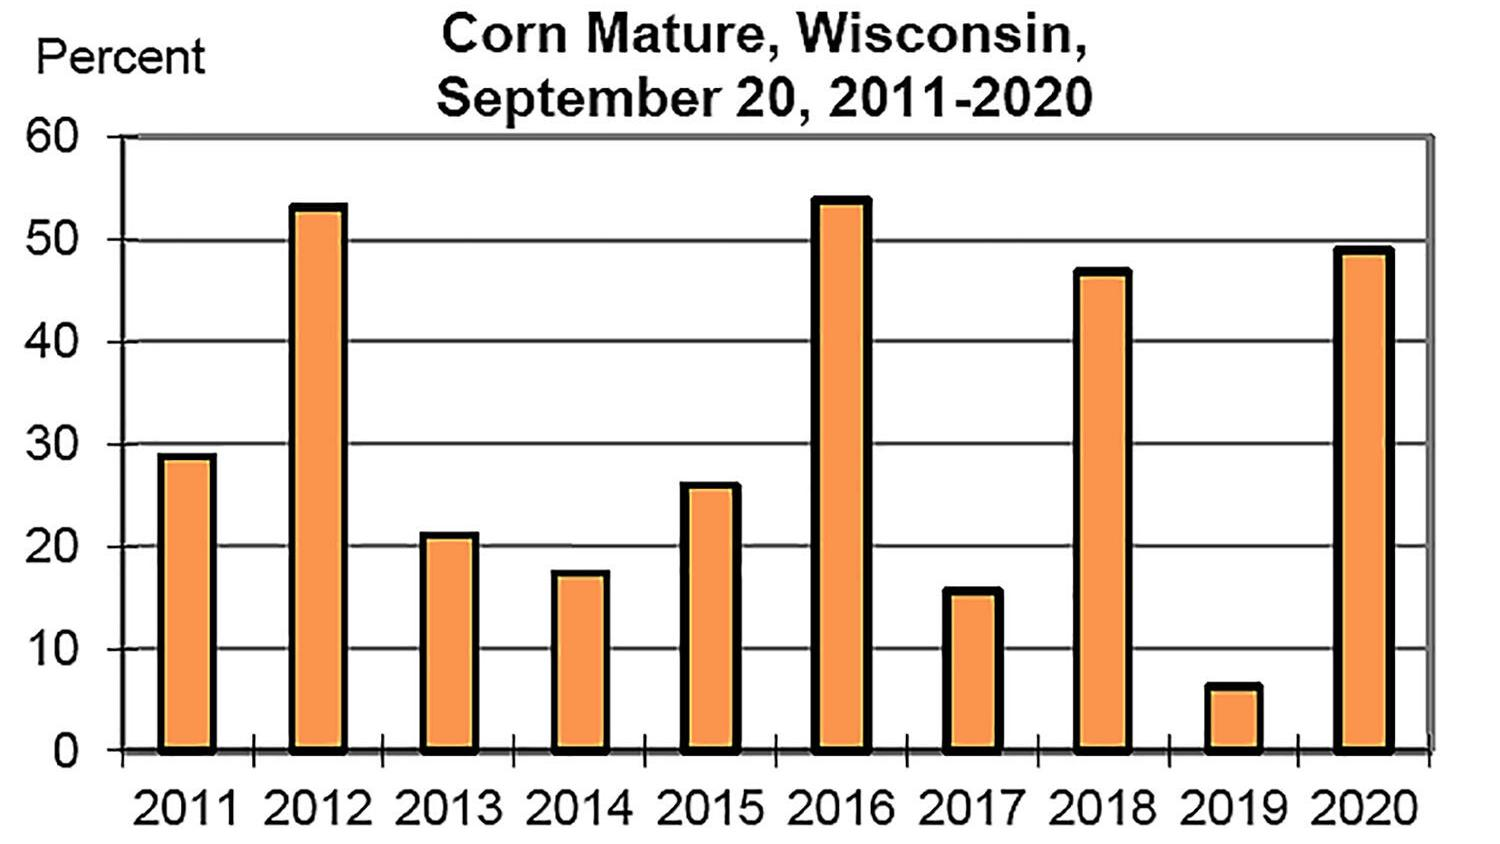 Corn, soybeans maturing rapidly in Wisconsin